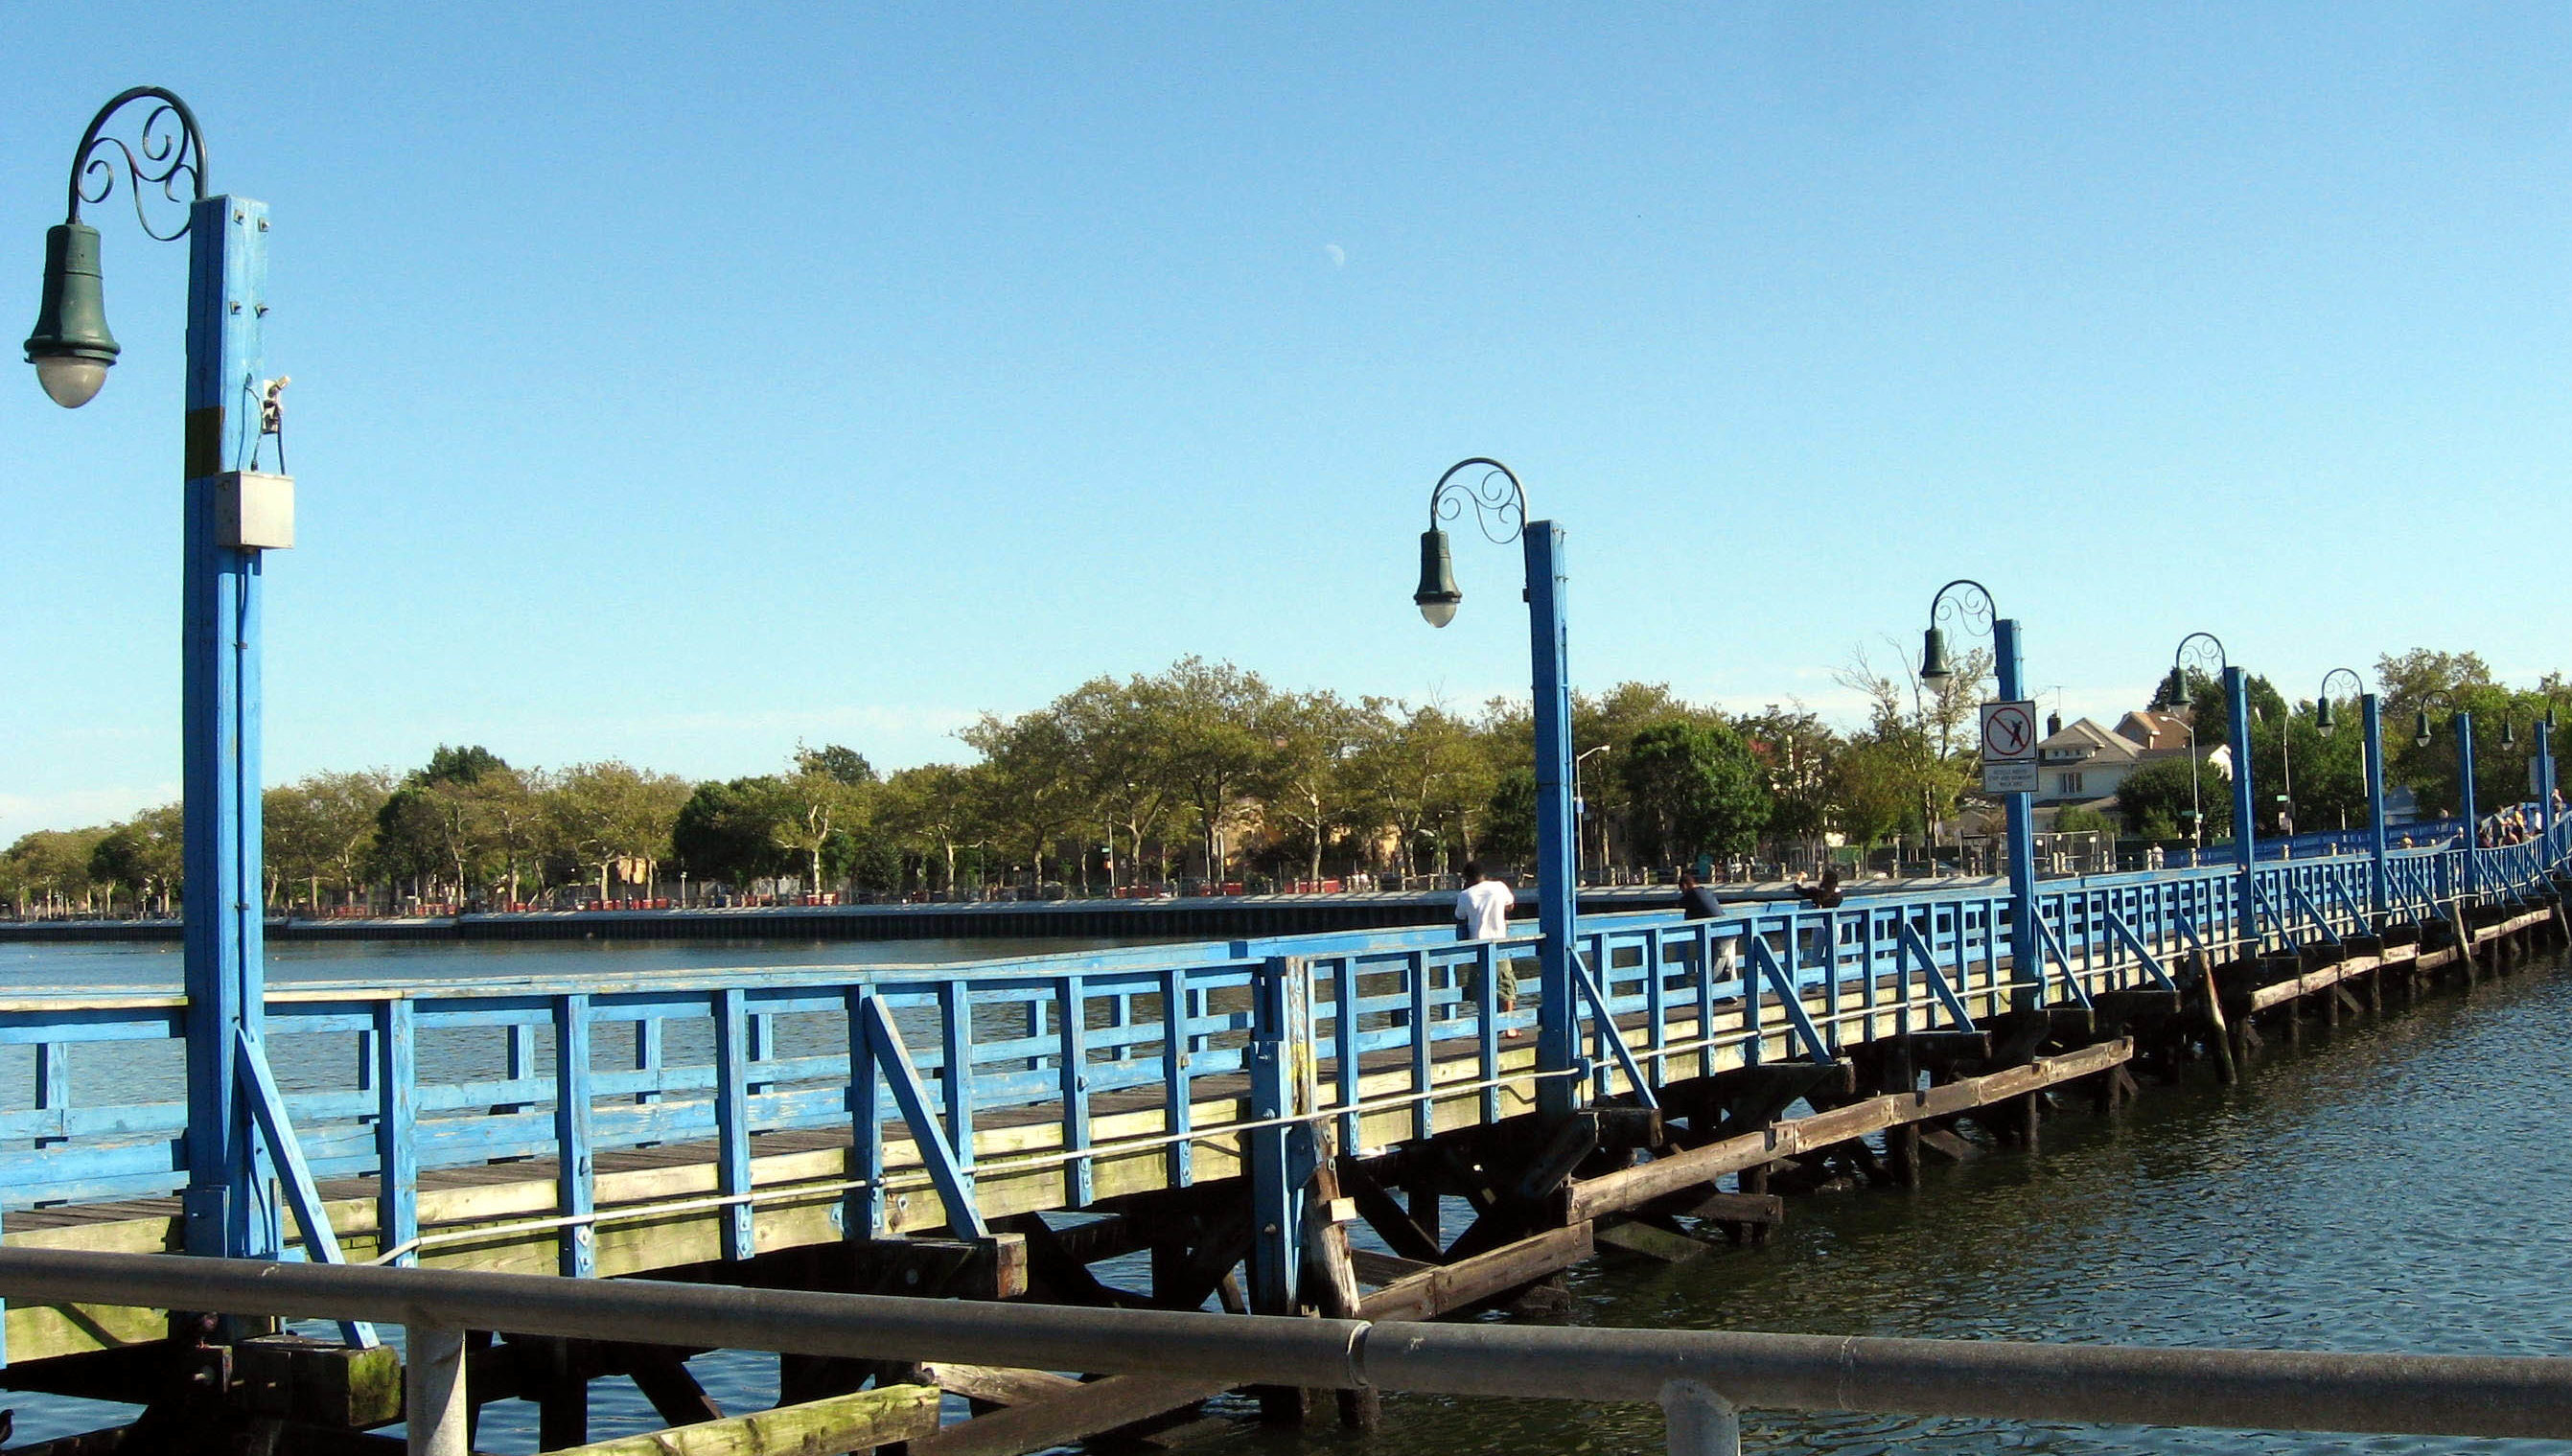 Sheepshead Bay Footbridge